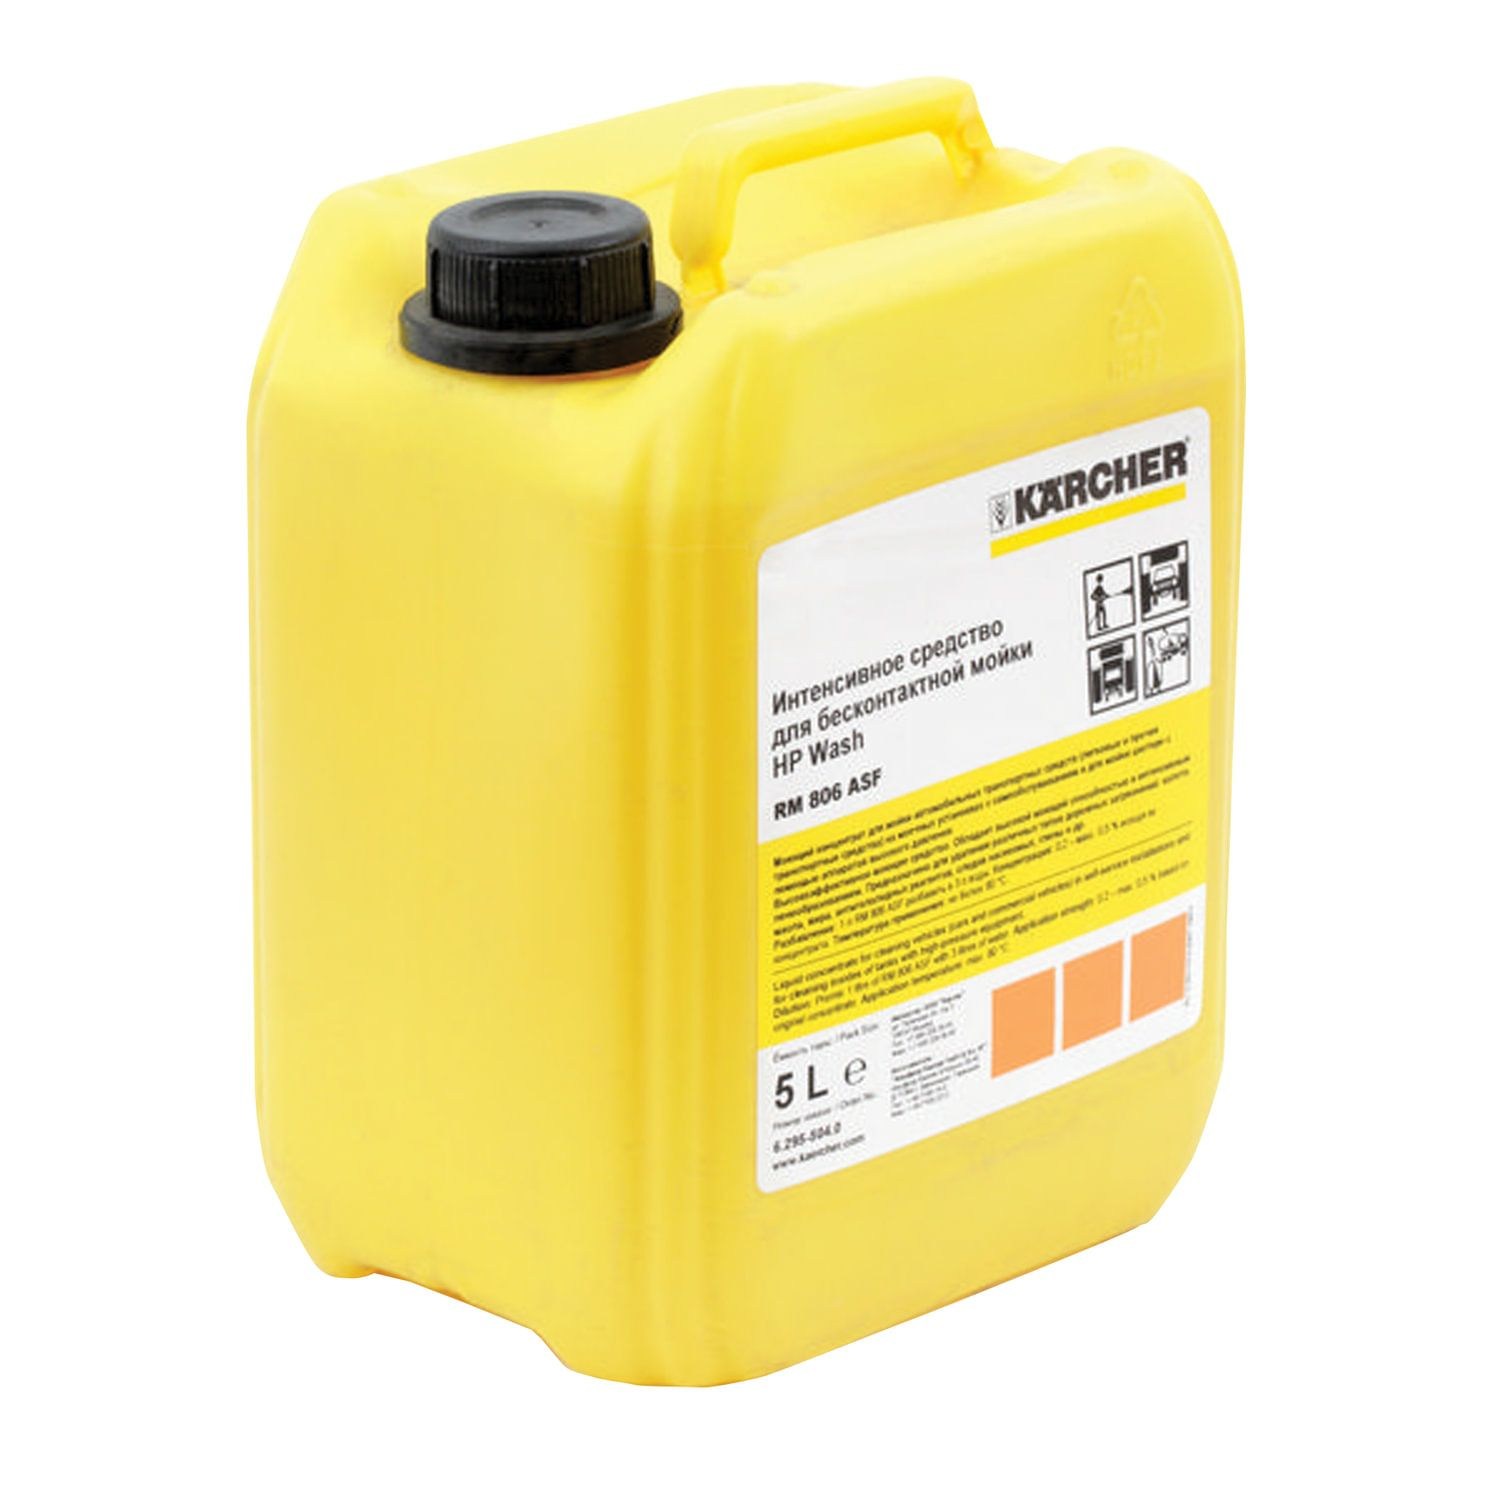 5 litre minimoek cleaner, KARCHER RM 806, to remove any persistent contaminants